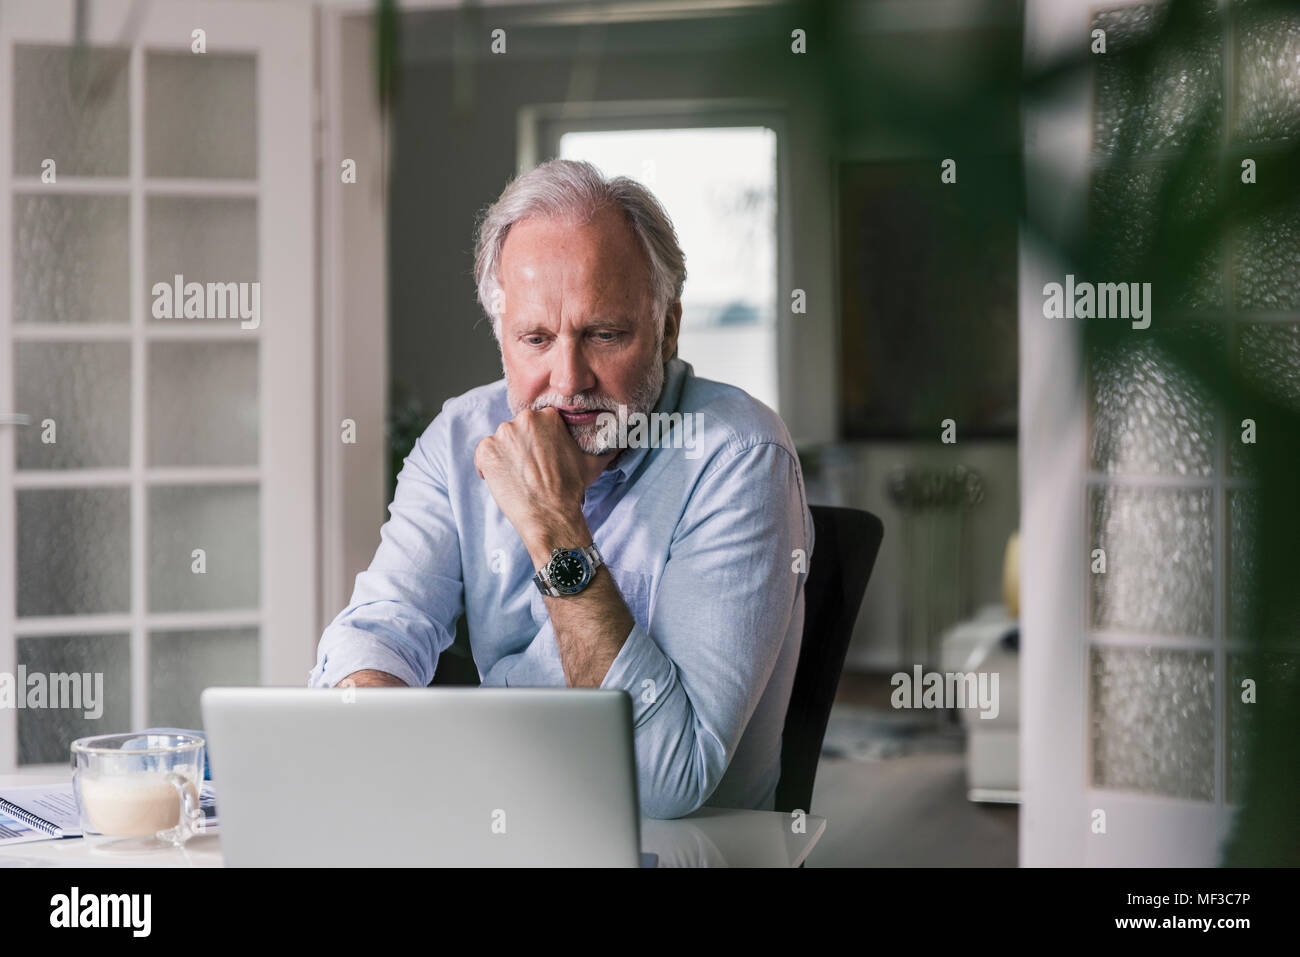 Portrait of mature man using laptop at home Photo Stock